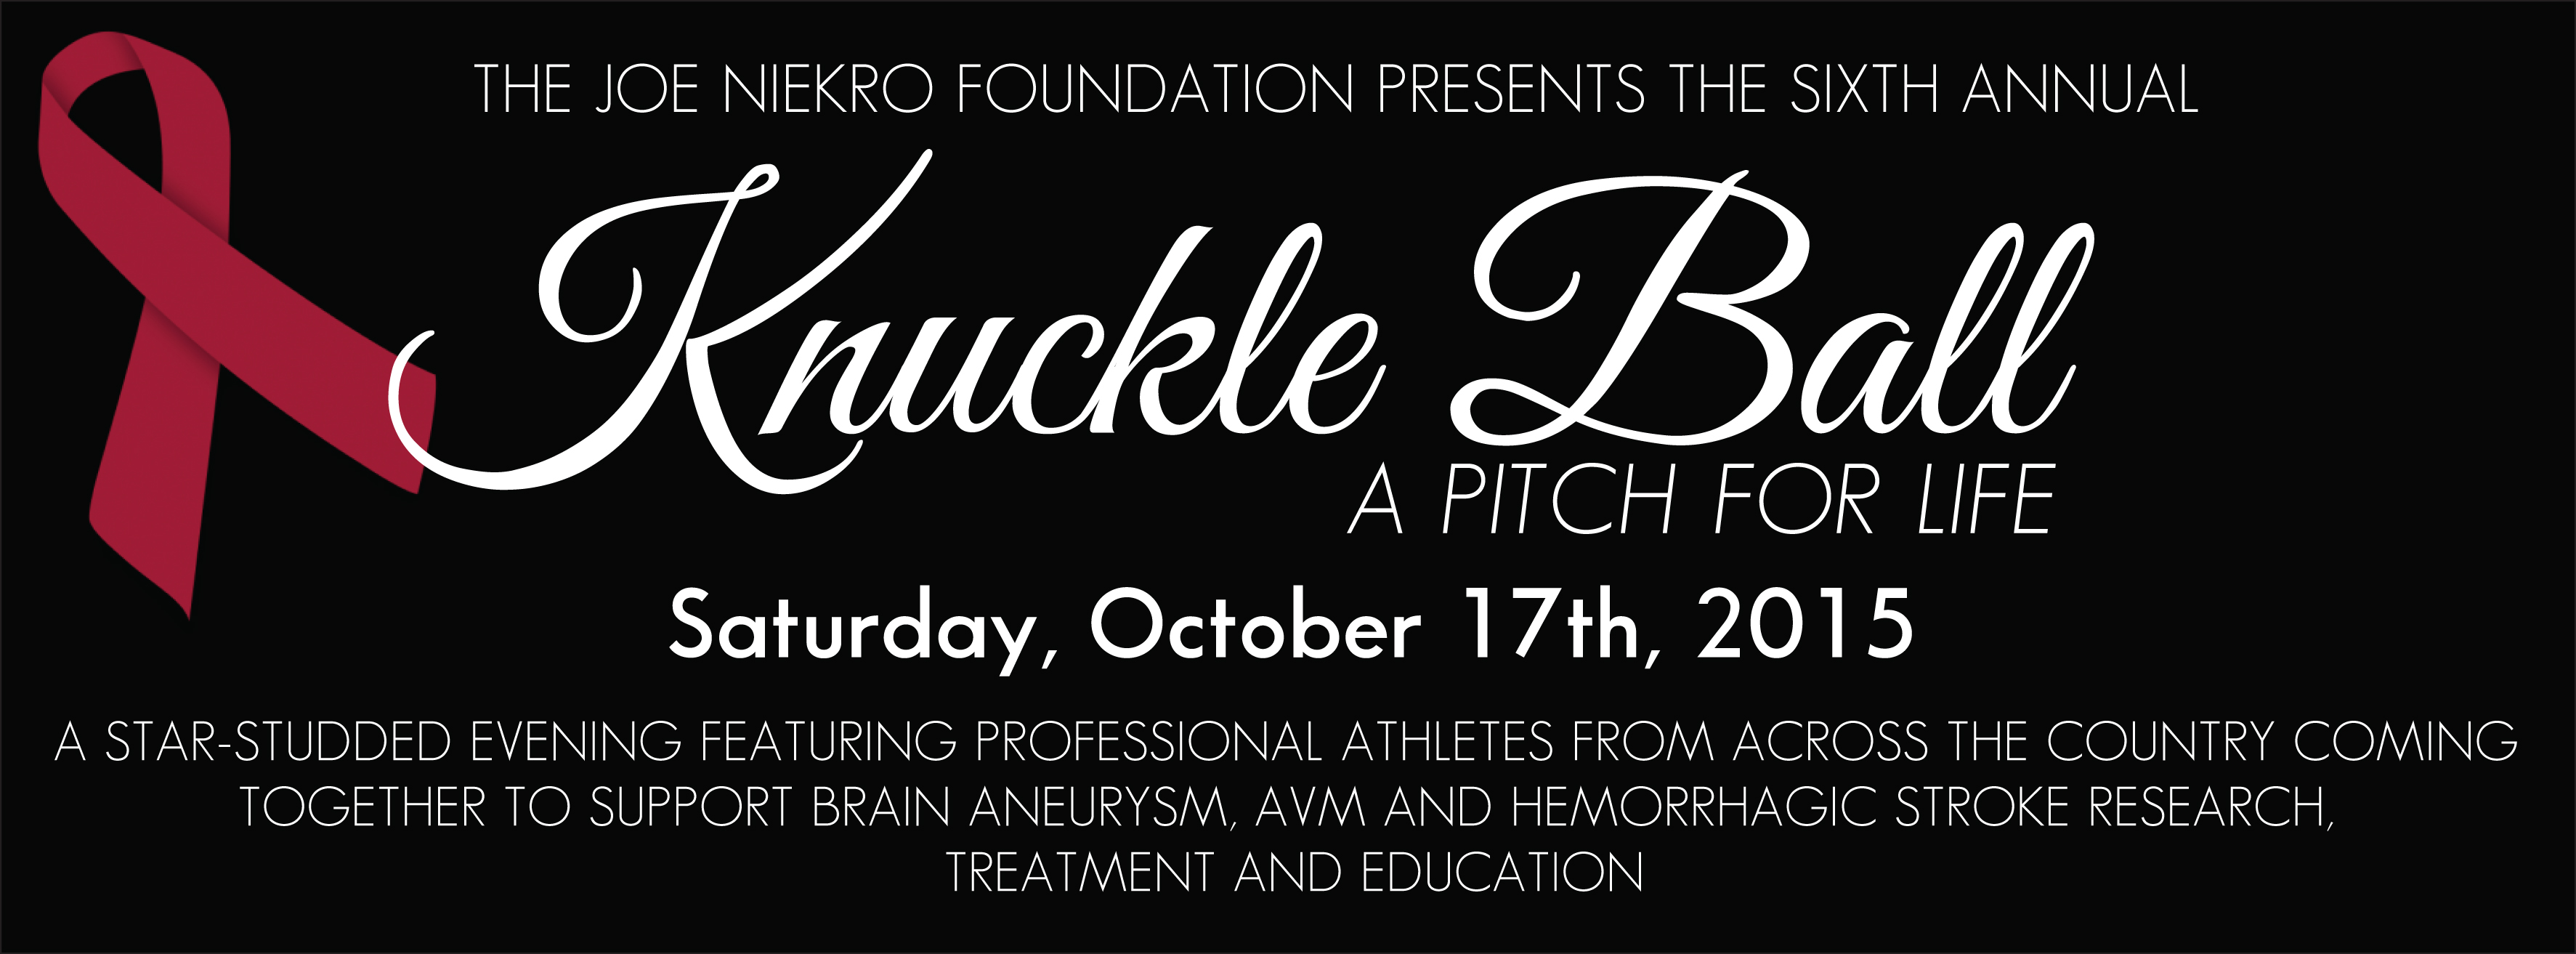 http://www.joeniekrofoundation.com/aneurysms/get-ready-to-pitch-another-great-evening-2/